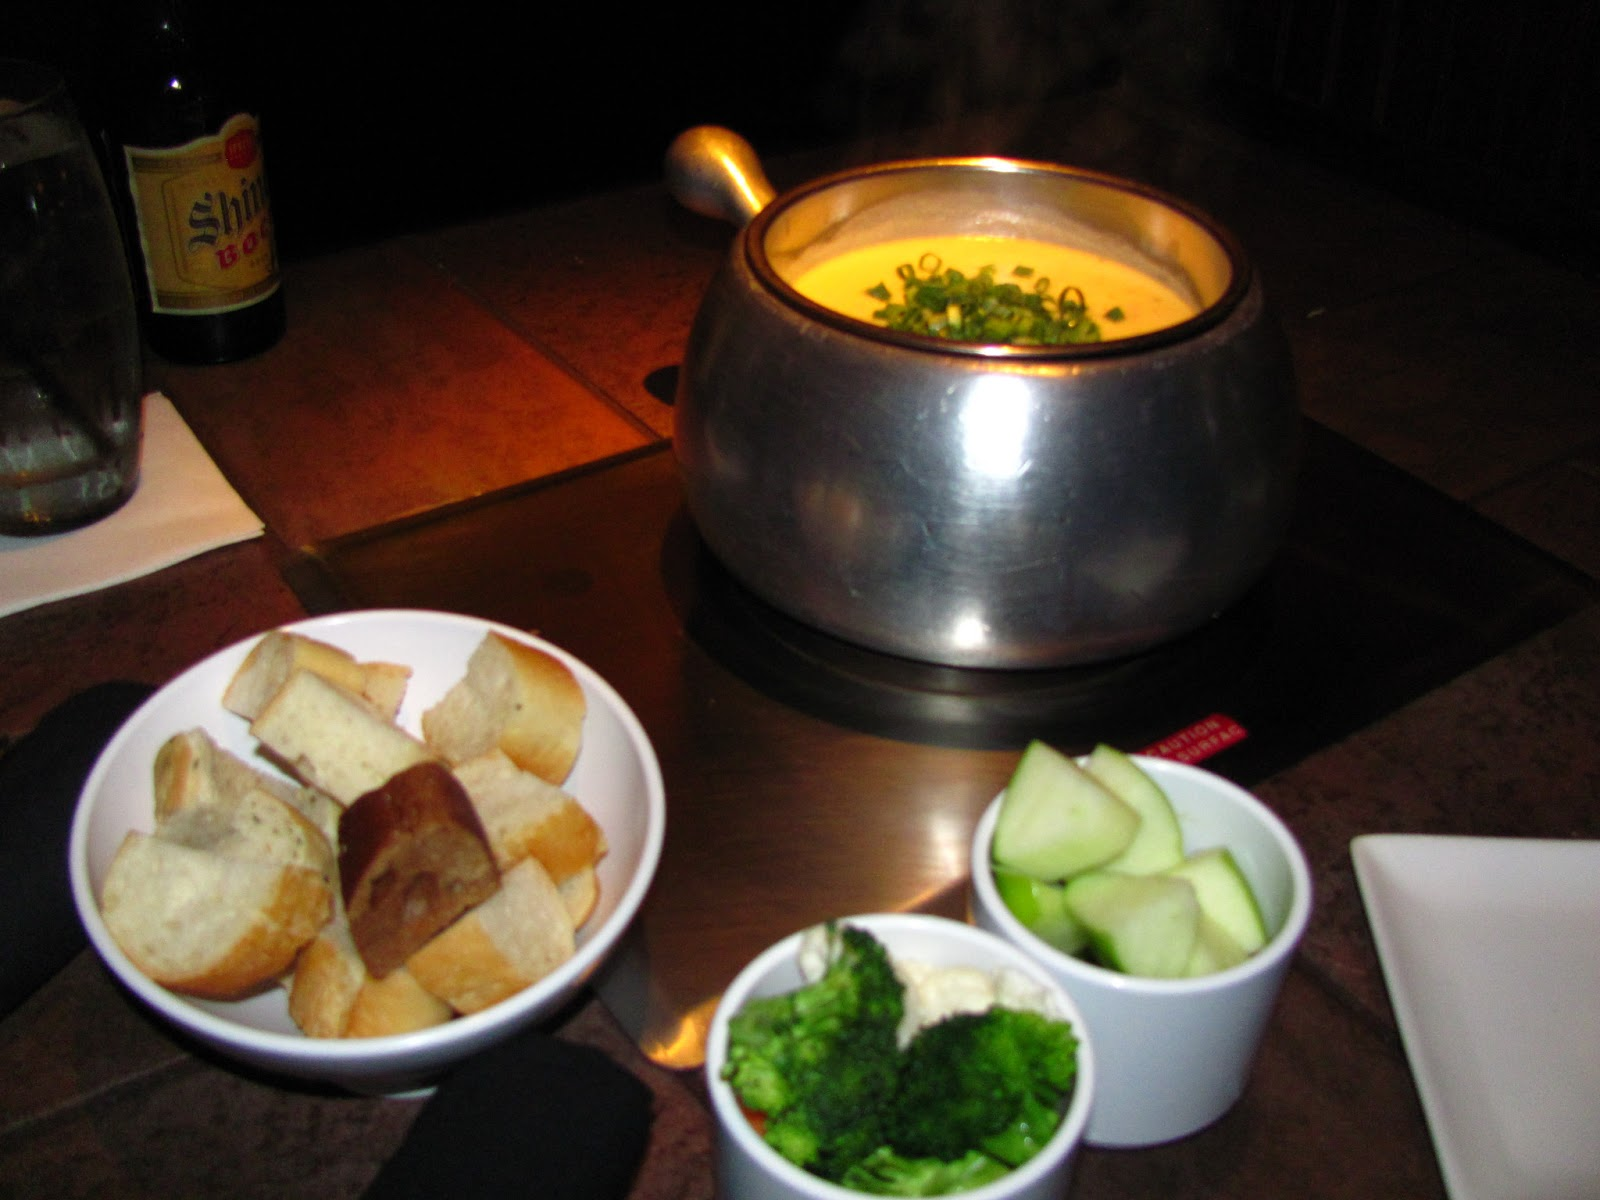 For the Love of Food: The Melting Pot's Bacon and Brie Fondue